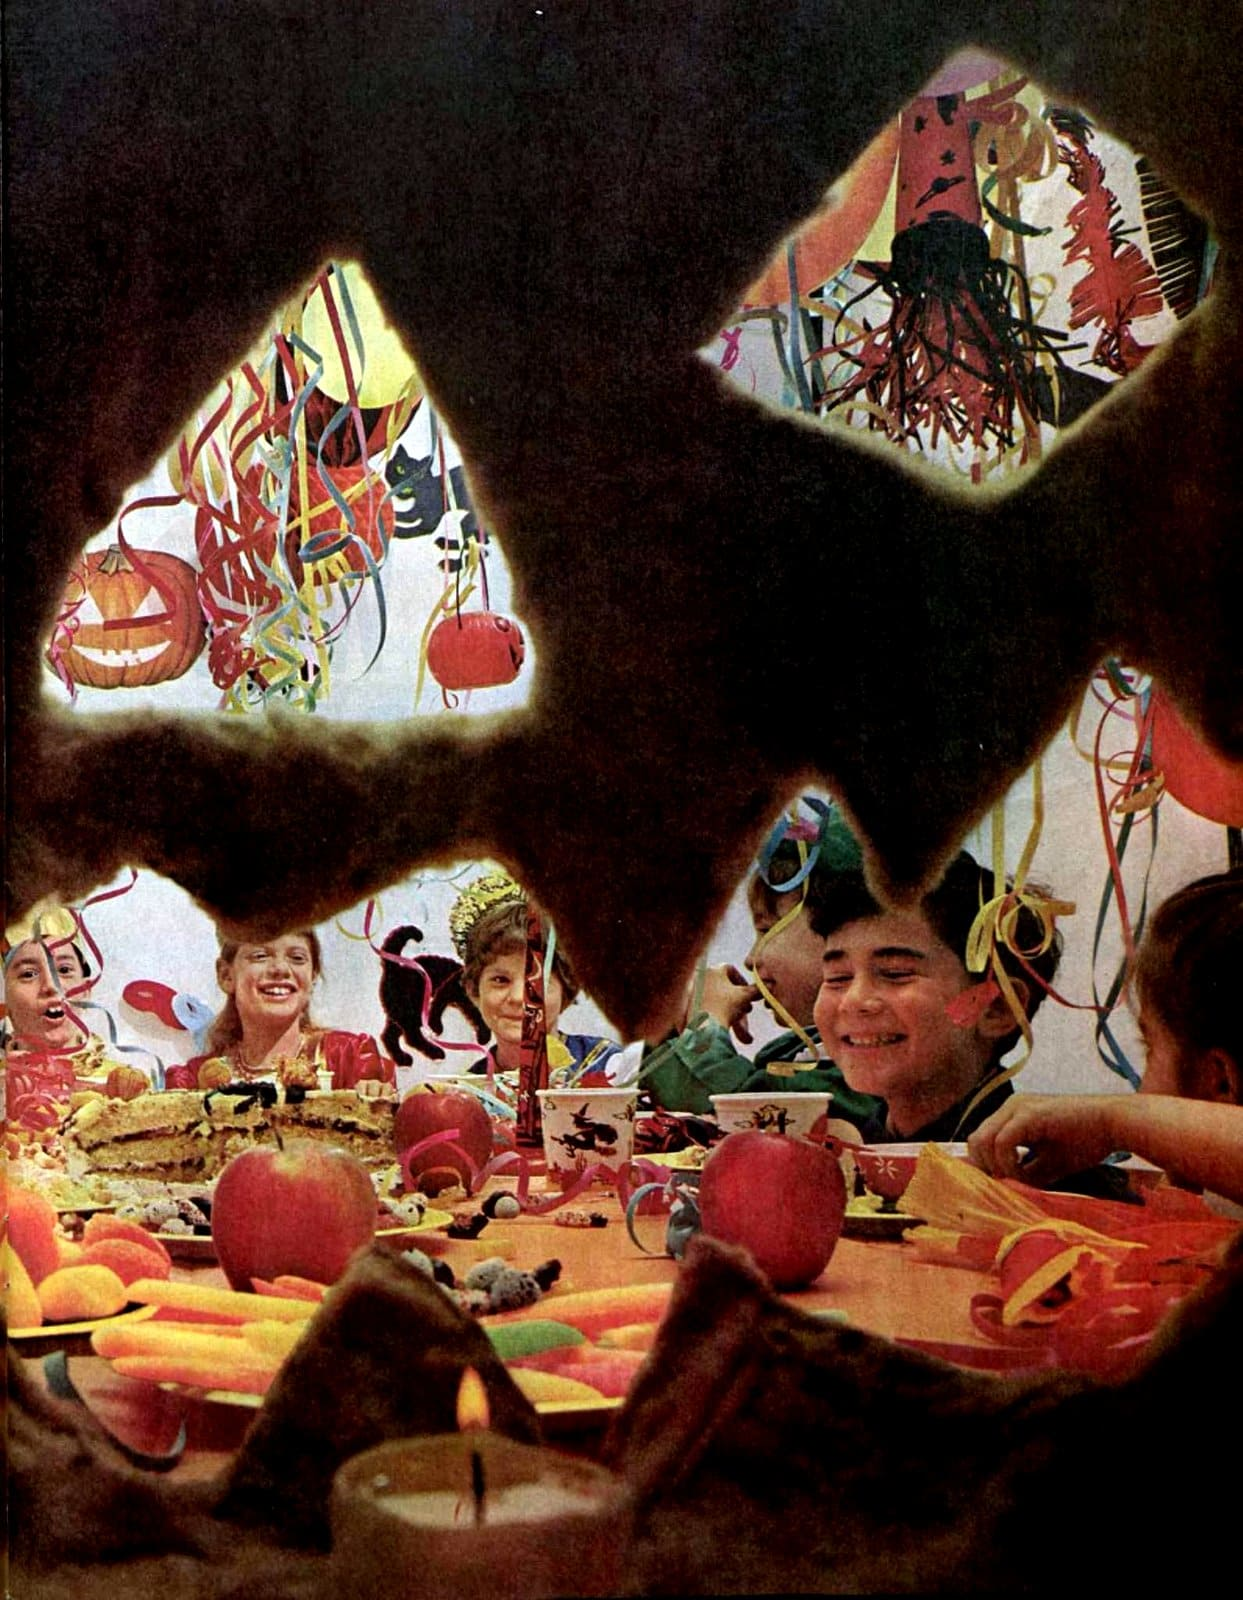 Old-fashioned Halloween party fun from 1961